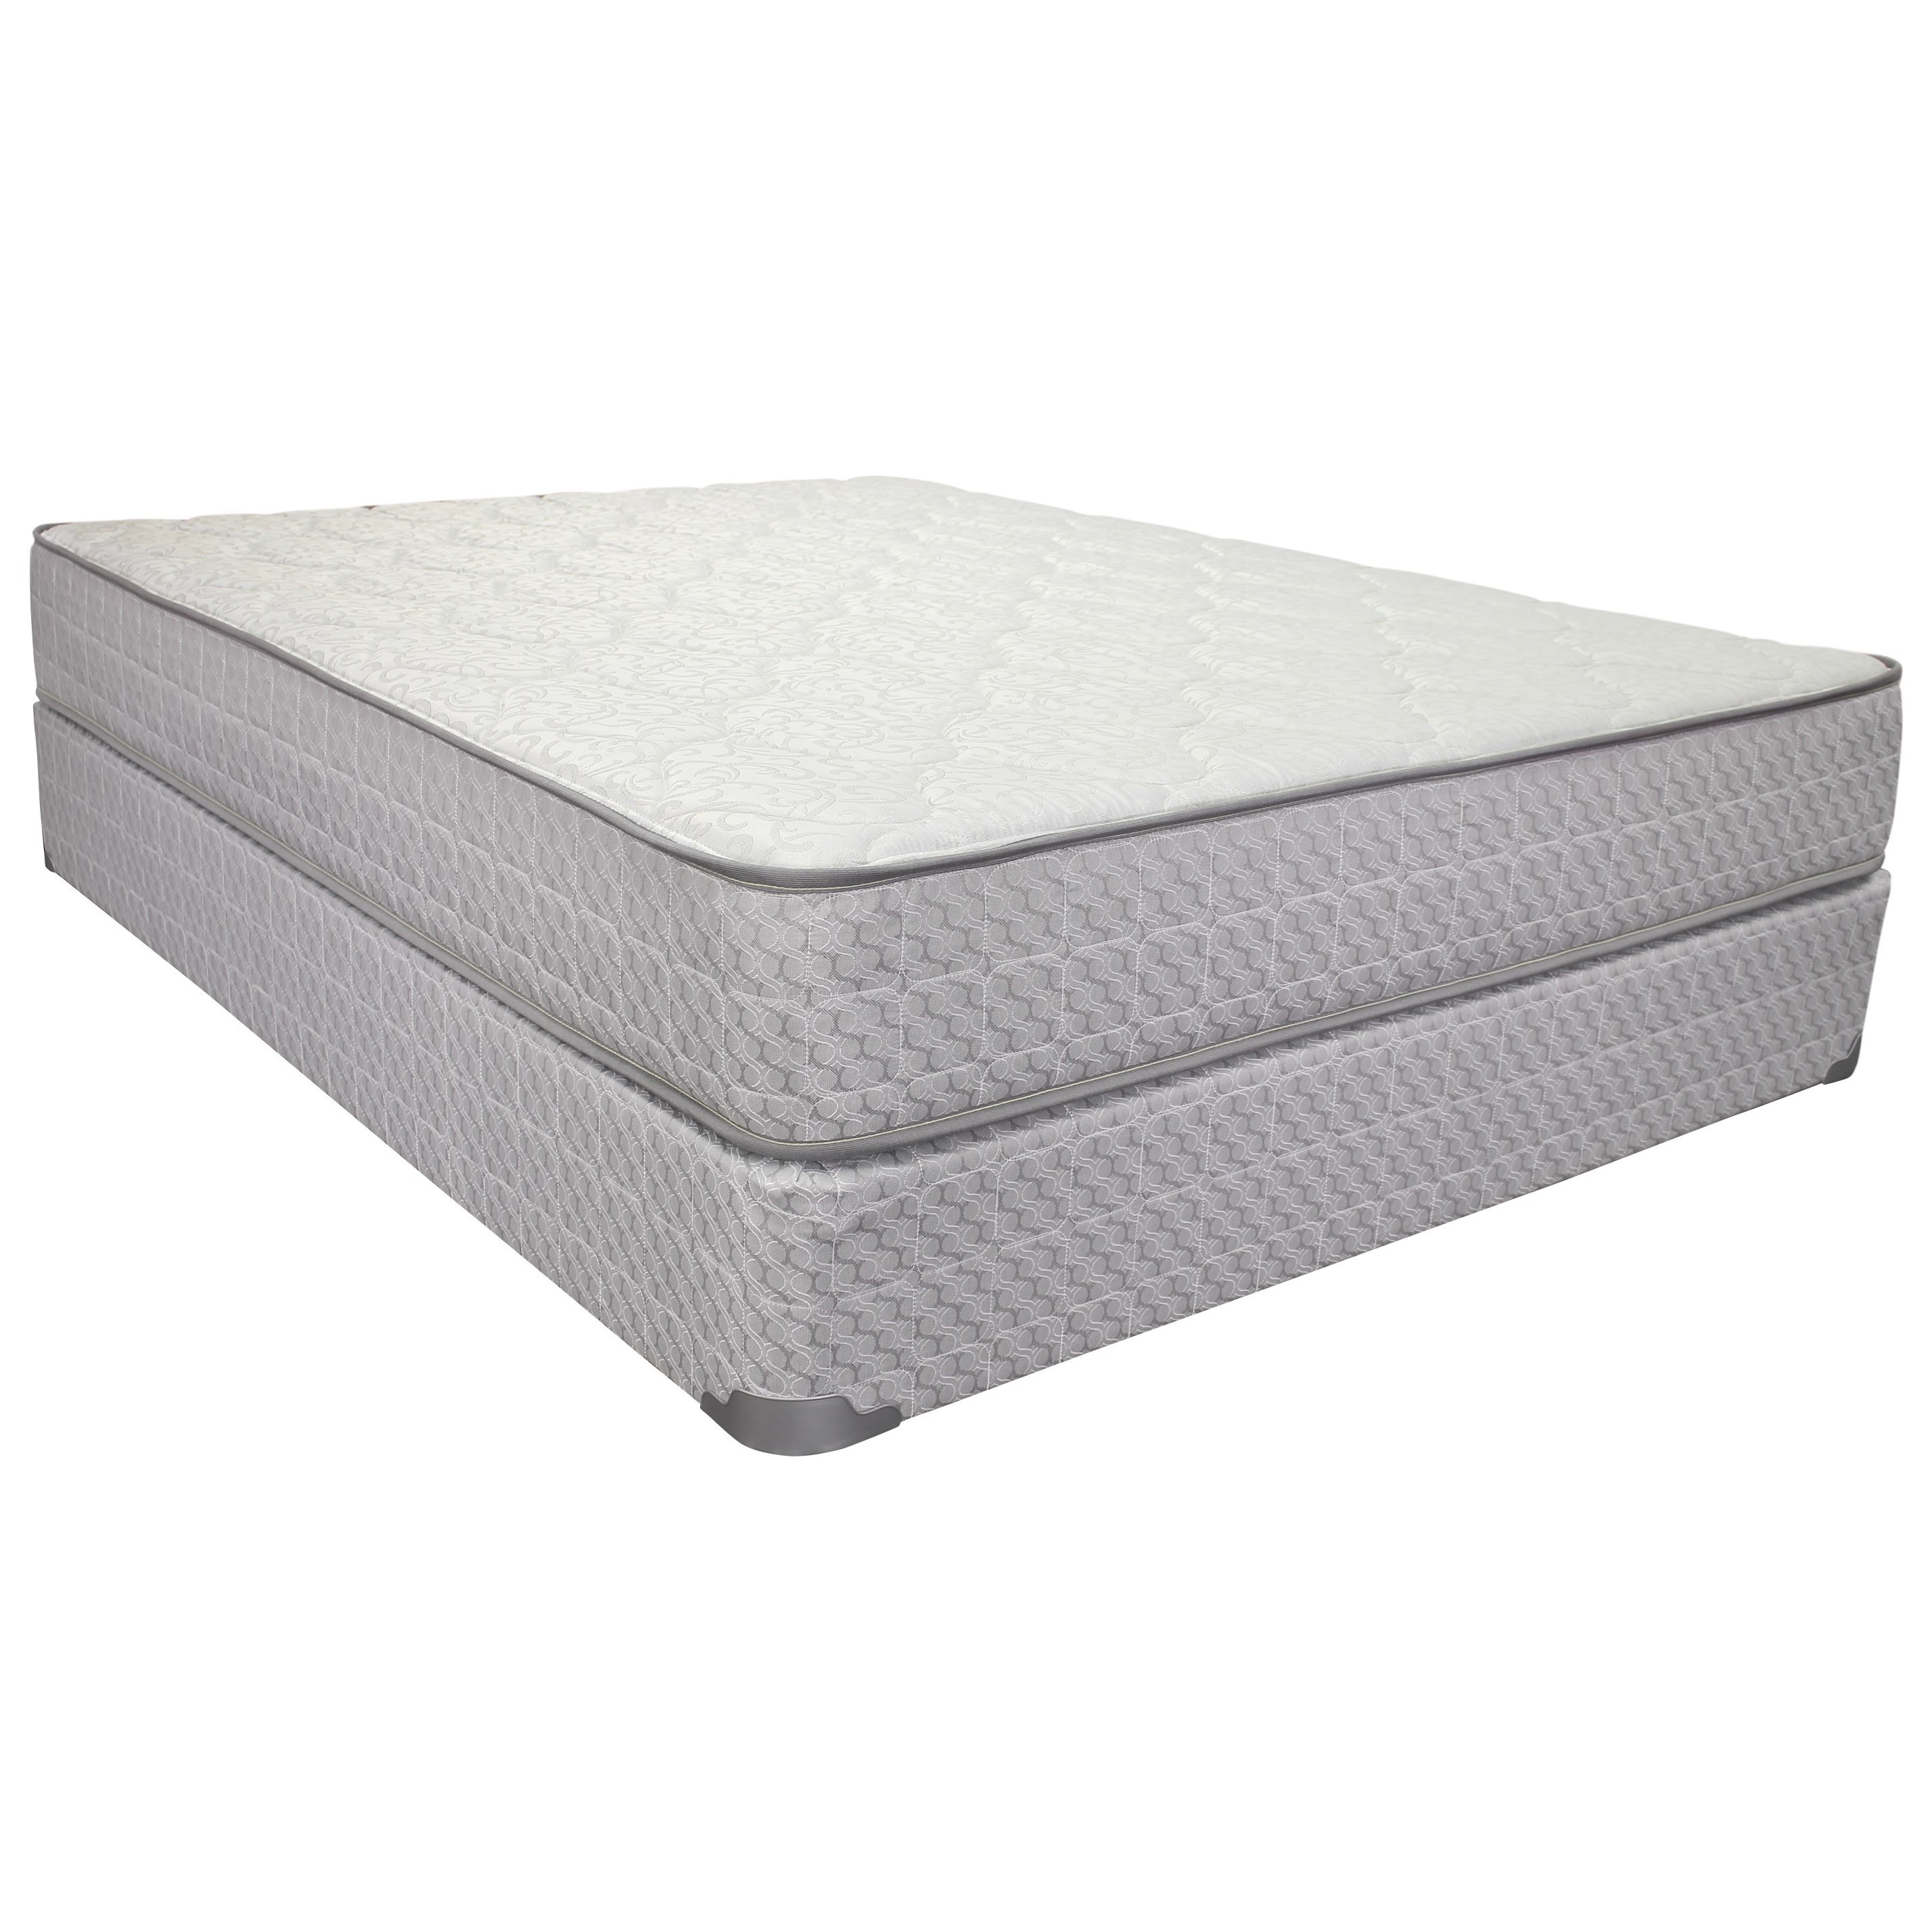 "Corsicana 2000 Merrick Firm King 9 1/2"" Firm Two Sided Mattress Set - Item Number: 2000-K+2xWoodfndtn-TXL"